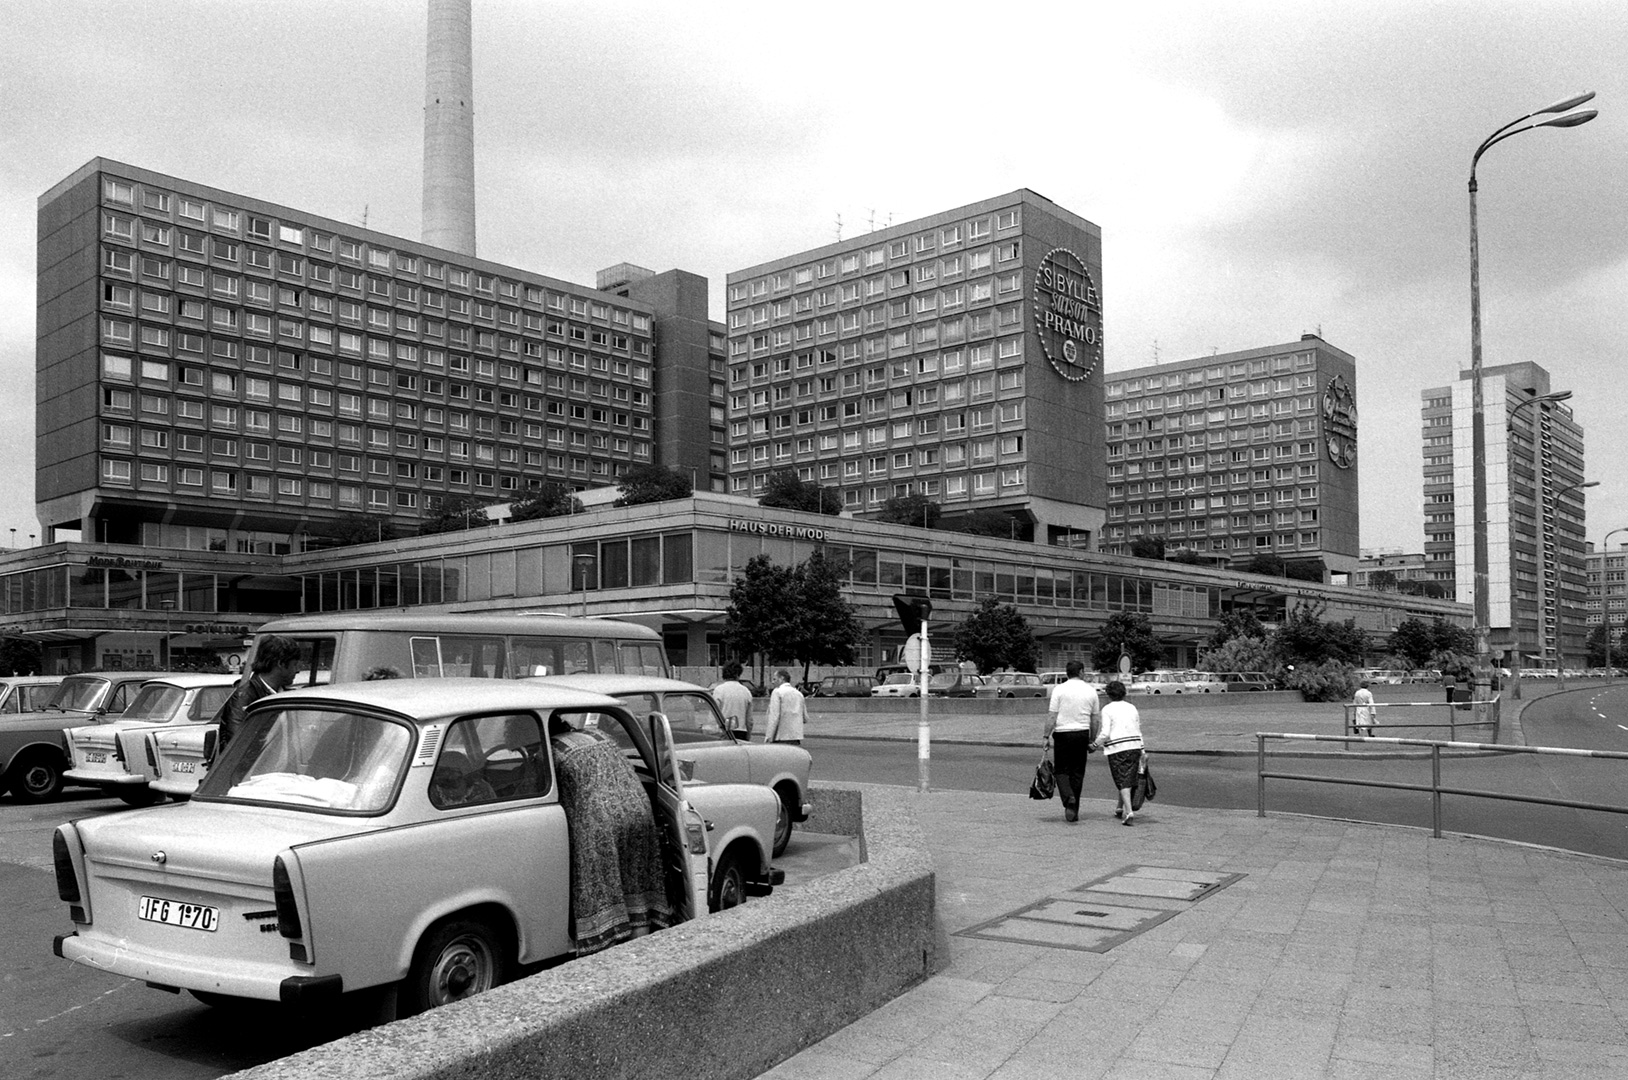 east-berlin-1983_05_Berlino-Est-33